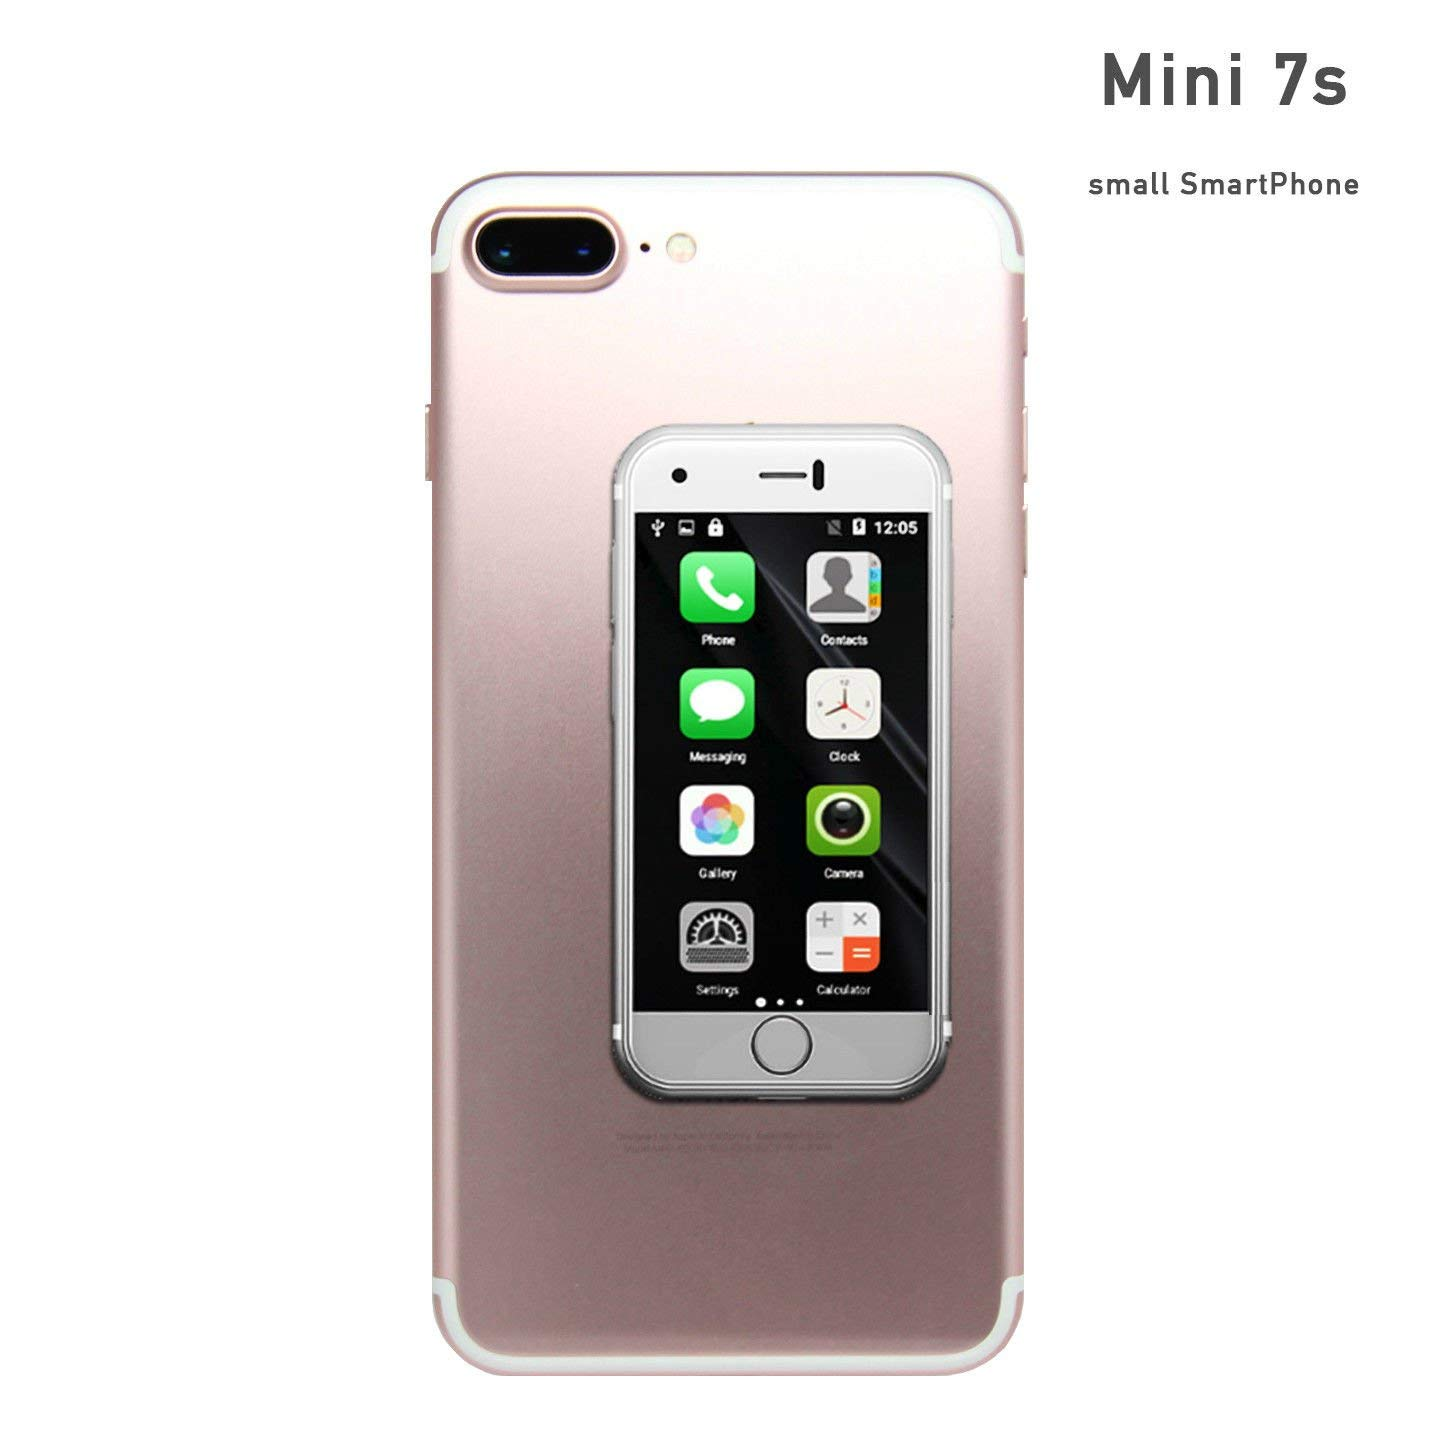 Mini Smartphone Ilight 7s World 39 S Smallest 7plus Android - Mobiles Mini Waschbecken